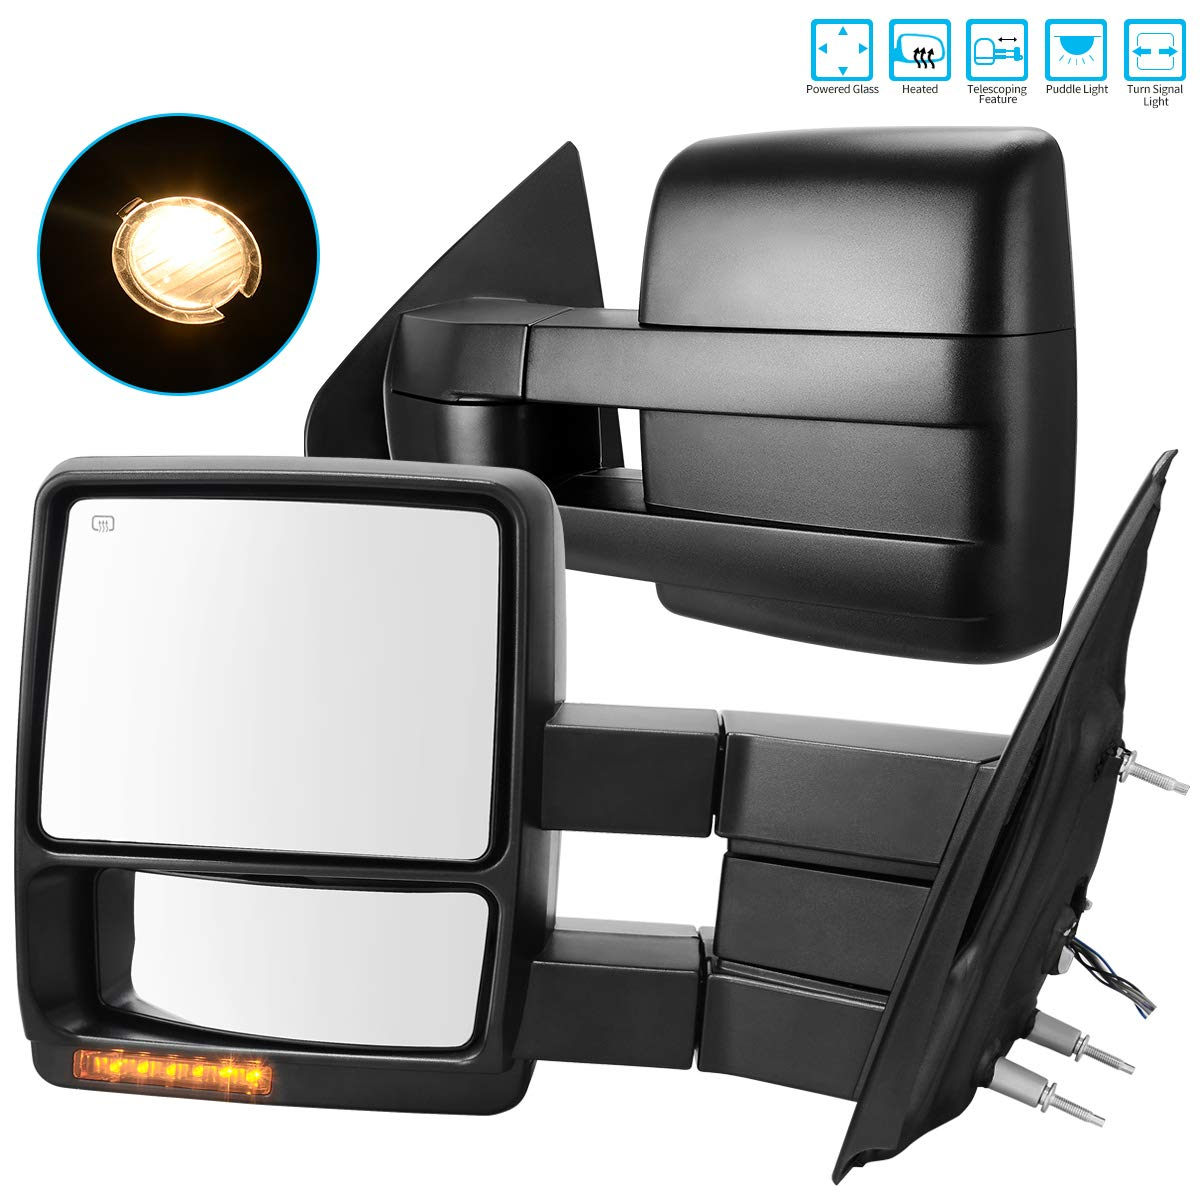 AUTOSAVER88 for 07-14 Ford F150 Truck Towing Mirrors, Tow Mirrors with Power Controlling Heated Glass Turn Signal and Puddle Lamp, Manual Telescoping and Folding Exterior Side Mirror by AUTOSAVER88